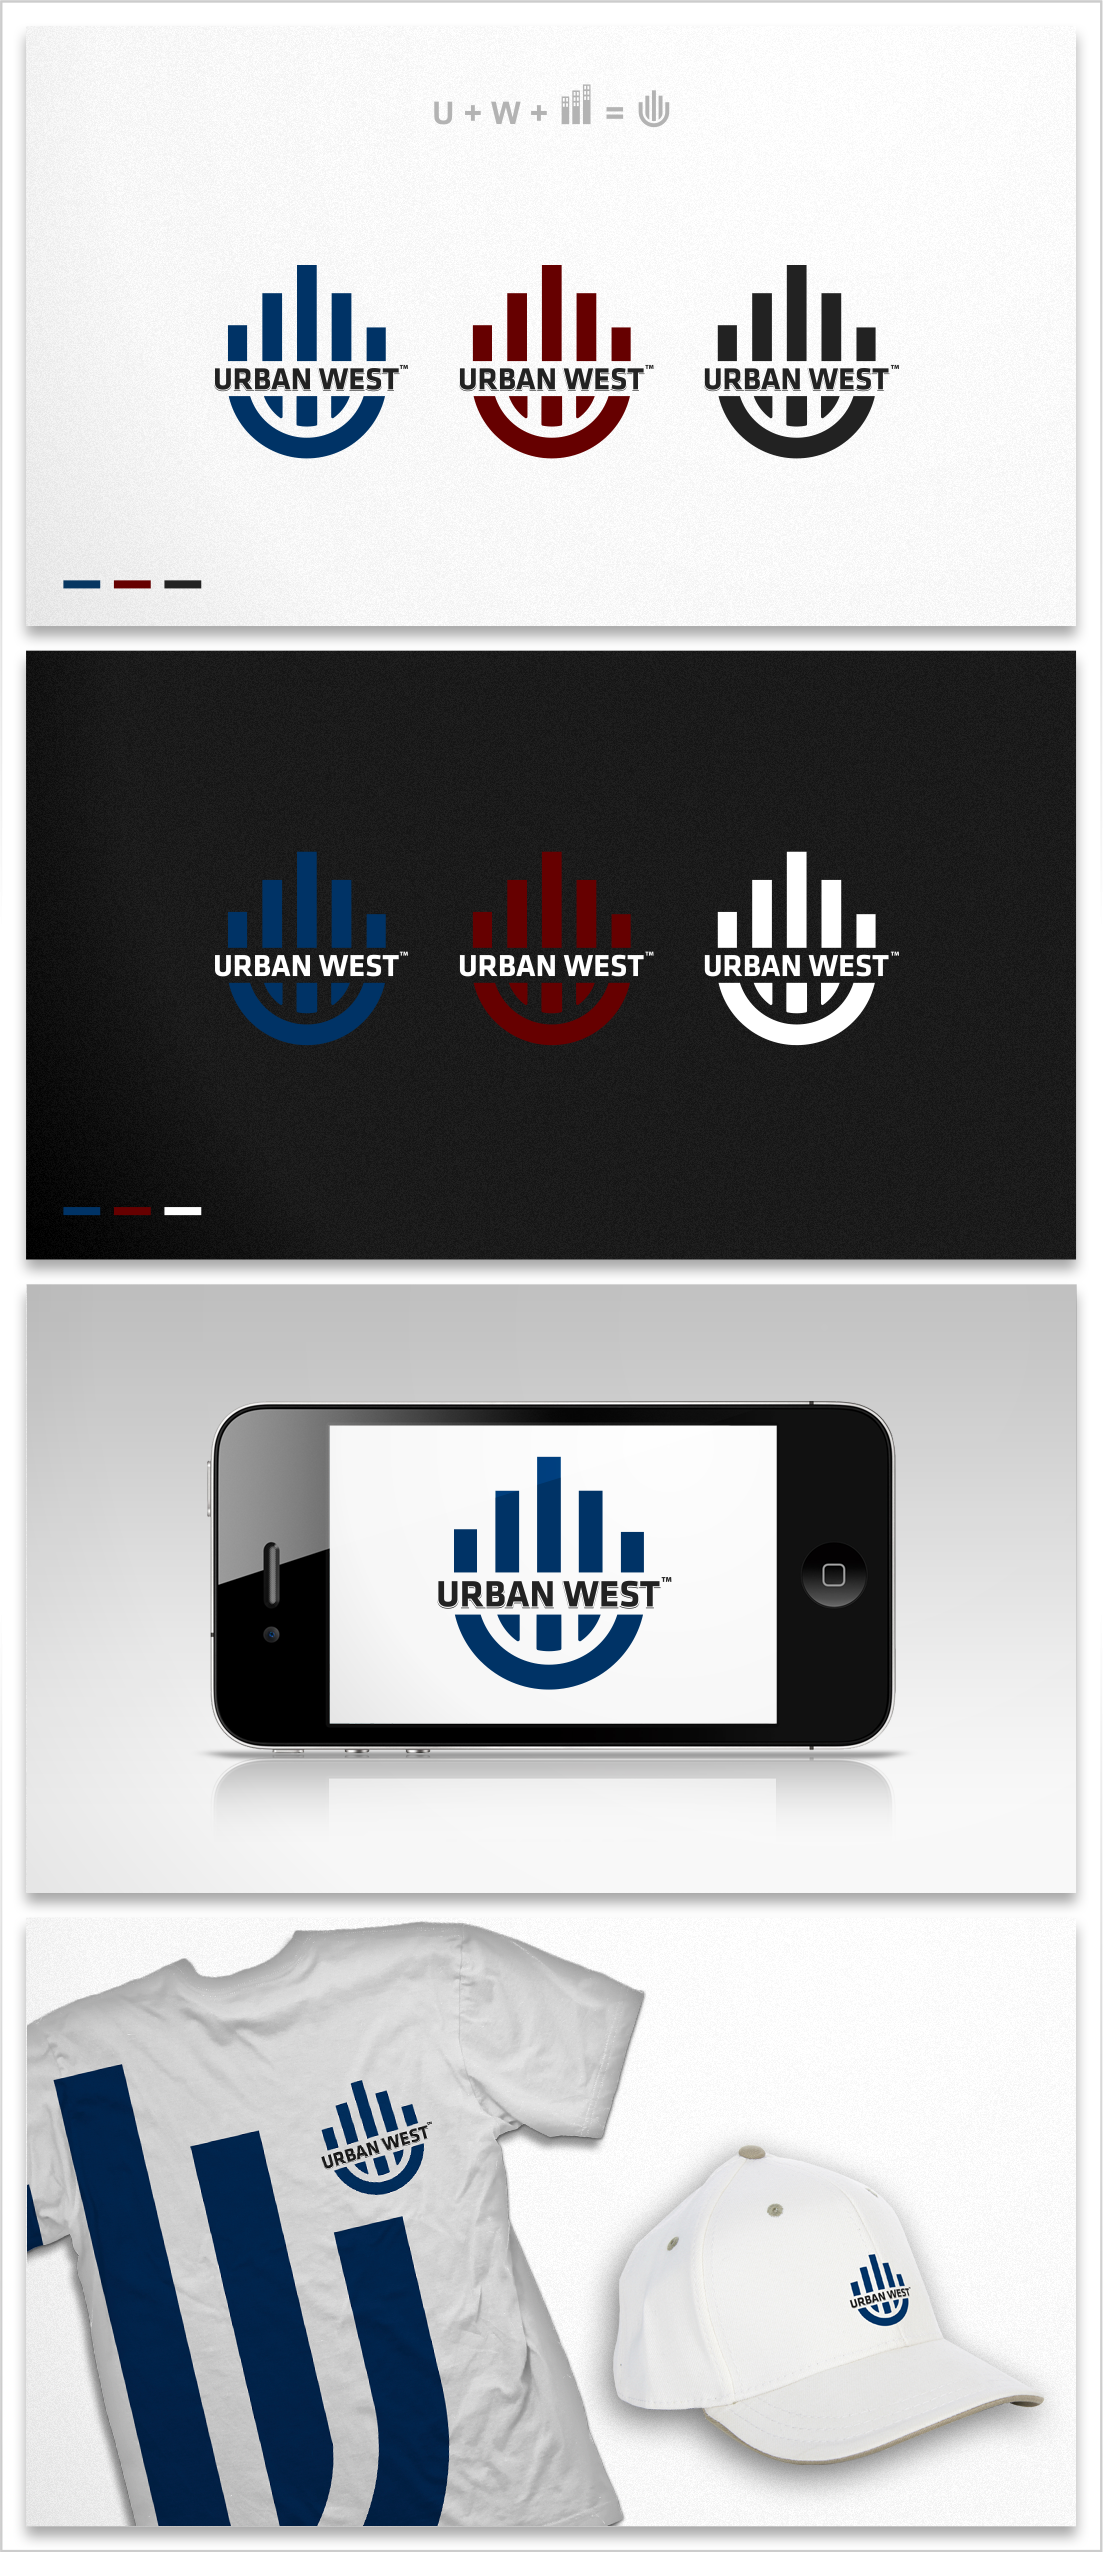 Urban West - Minimal, Clever Concept Mark Needed!